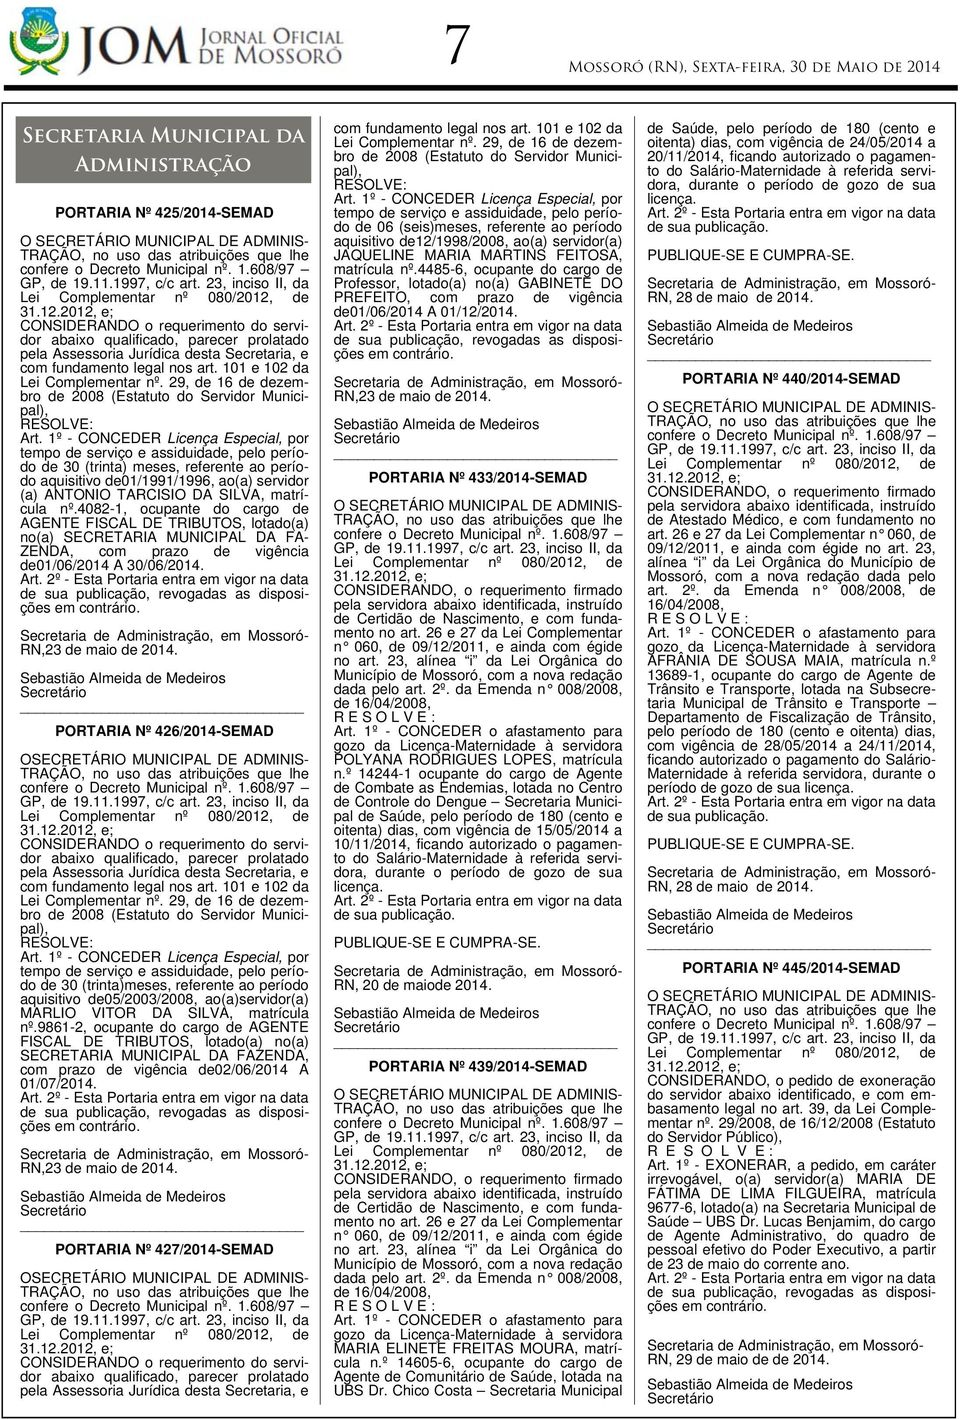 de 31.12.2012, e; CONSIDERANDO o requerimento do servidor abaixo qualificado, parecer prolatado pela Assessoria Jurídica desta Secretaria, e com fundamento legal nos art.